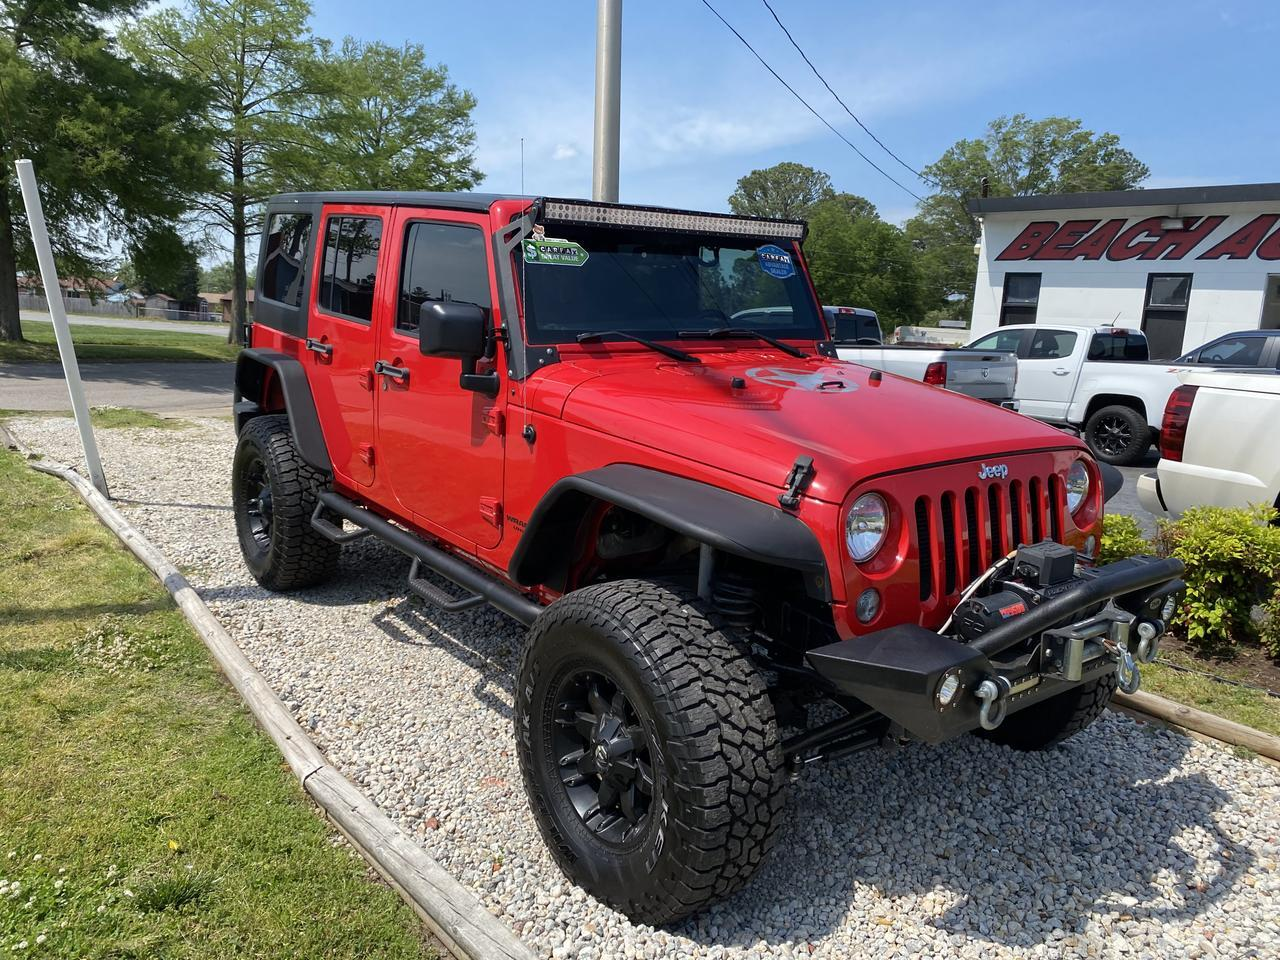 2015 JEEP WRANGLER UNLIMITED RUBICON 4X4, WARRANTY, LEATHER, NAV, HEATED SEATS, BLUETOOTH, AUX/USB PORT, CLEAN CARFAX! Norfolk VA